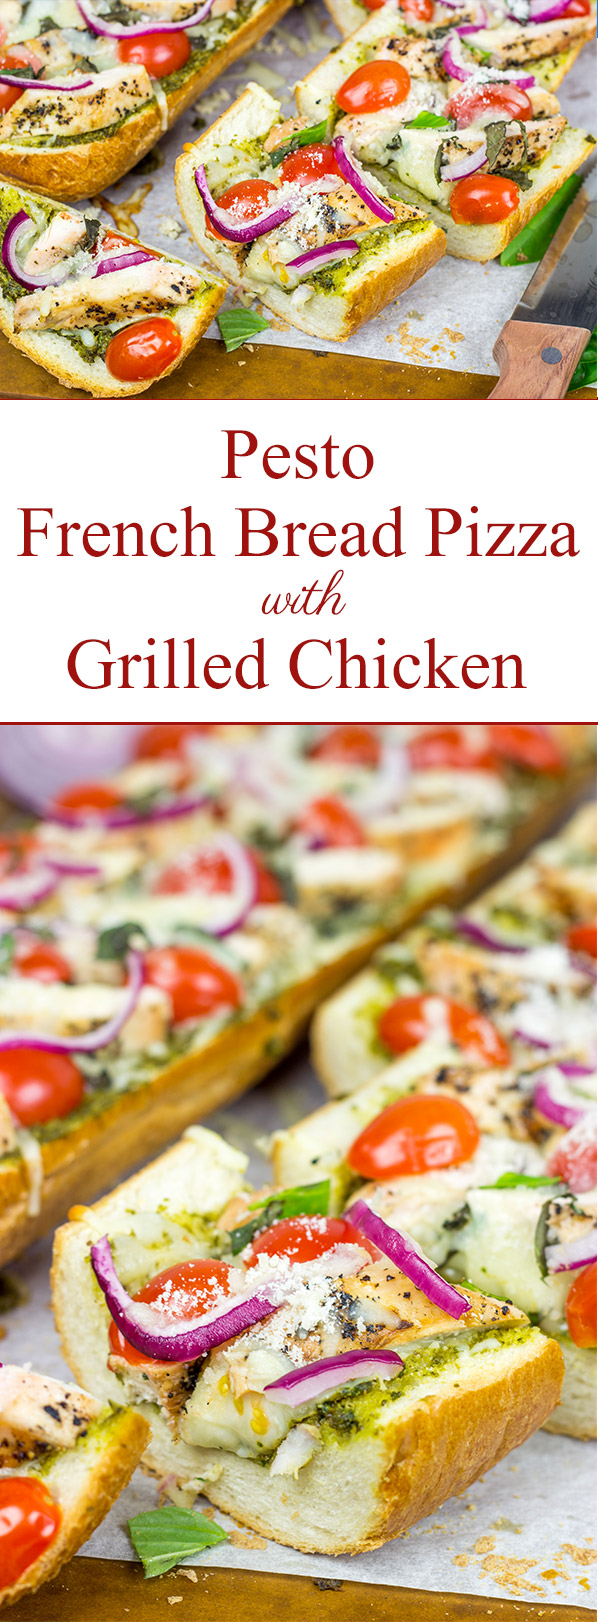 This Pesto French Bread Pizza with Grilled Chicken is a tasty and fun appetizer to serve during the big game!